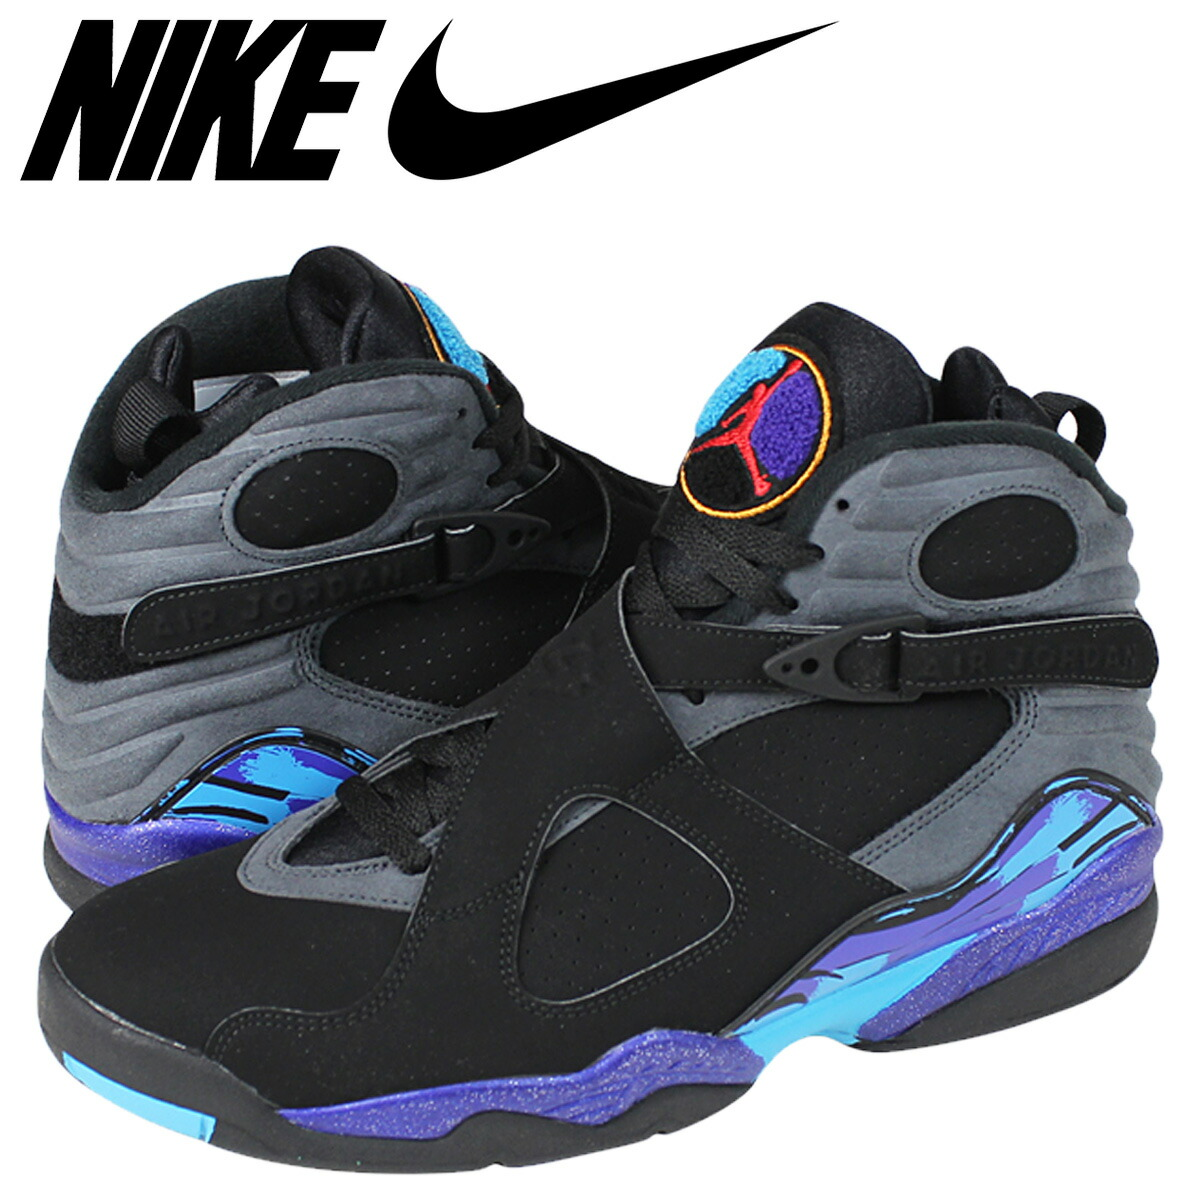 7c45d24bb80 nike jordan 8 cheap > OFF62% Discounted